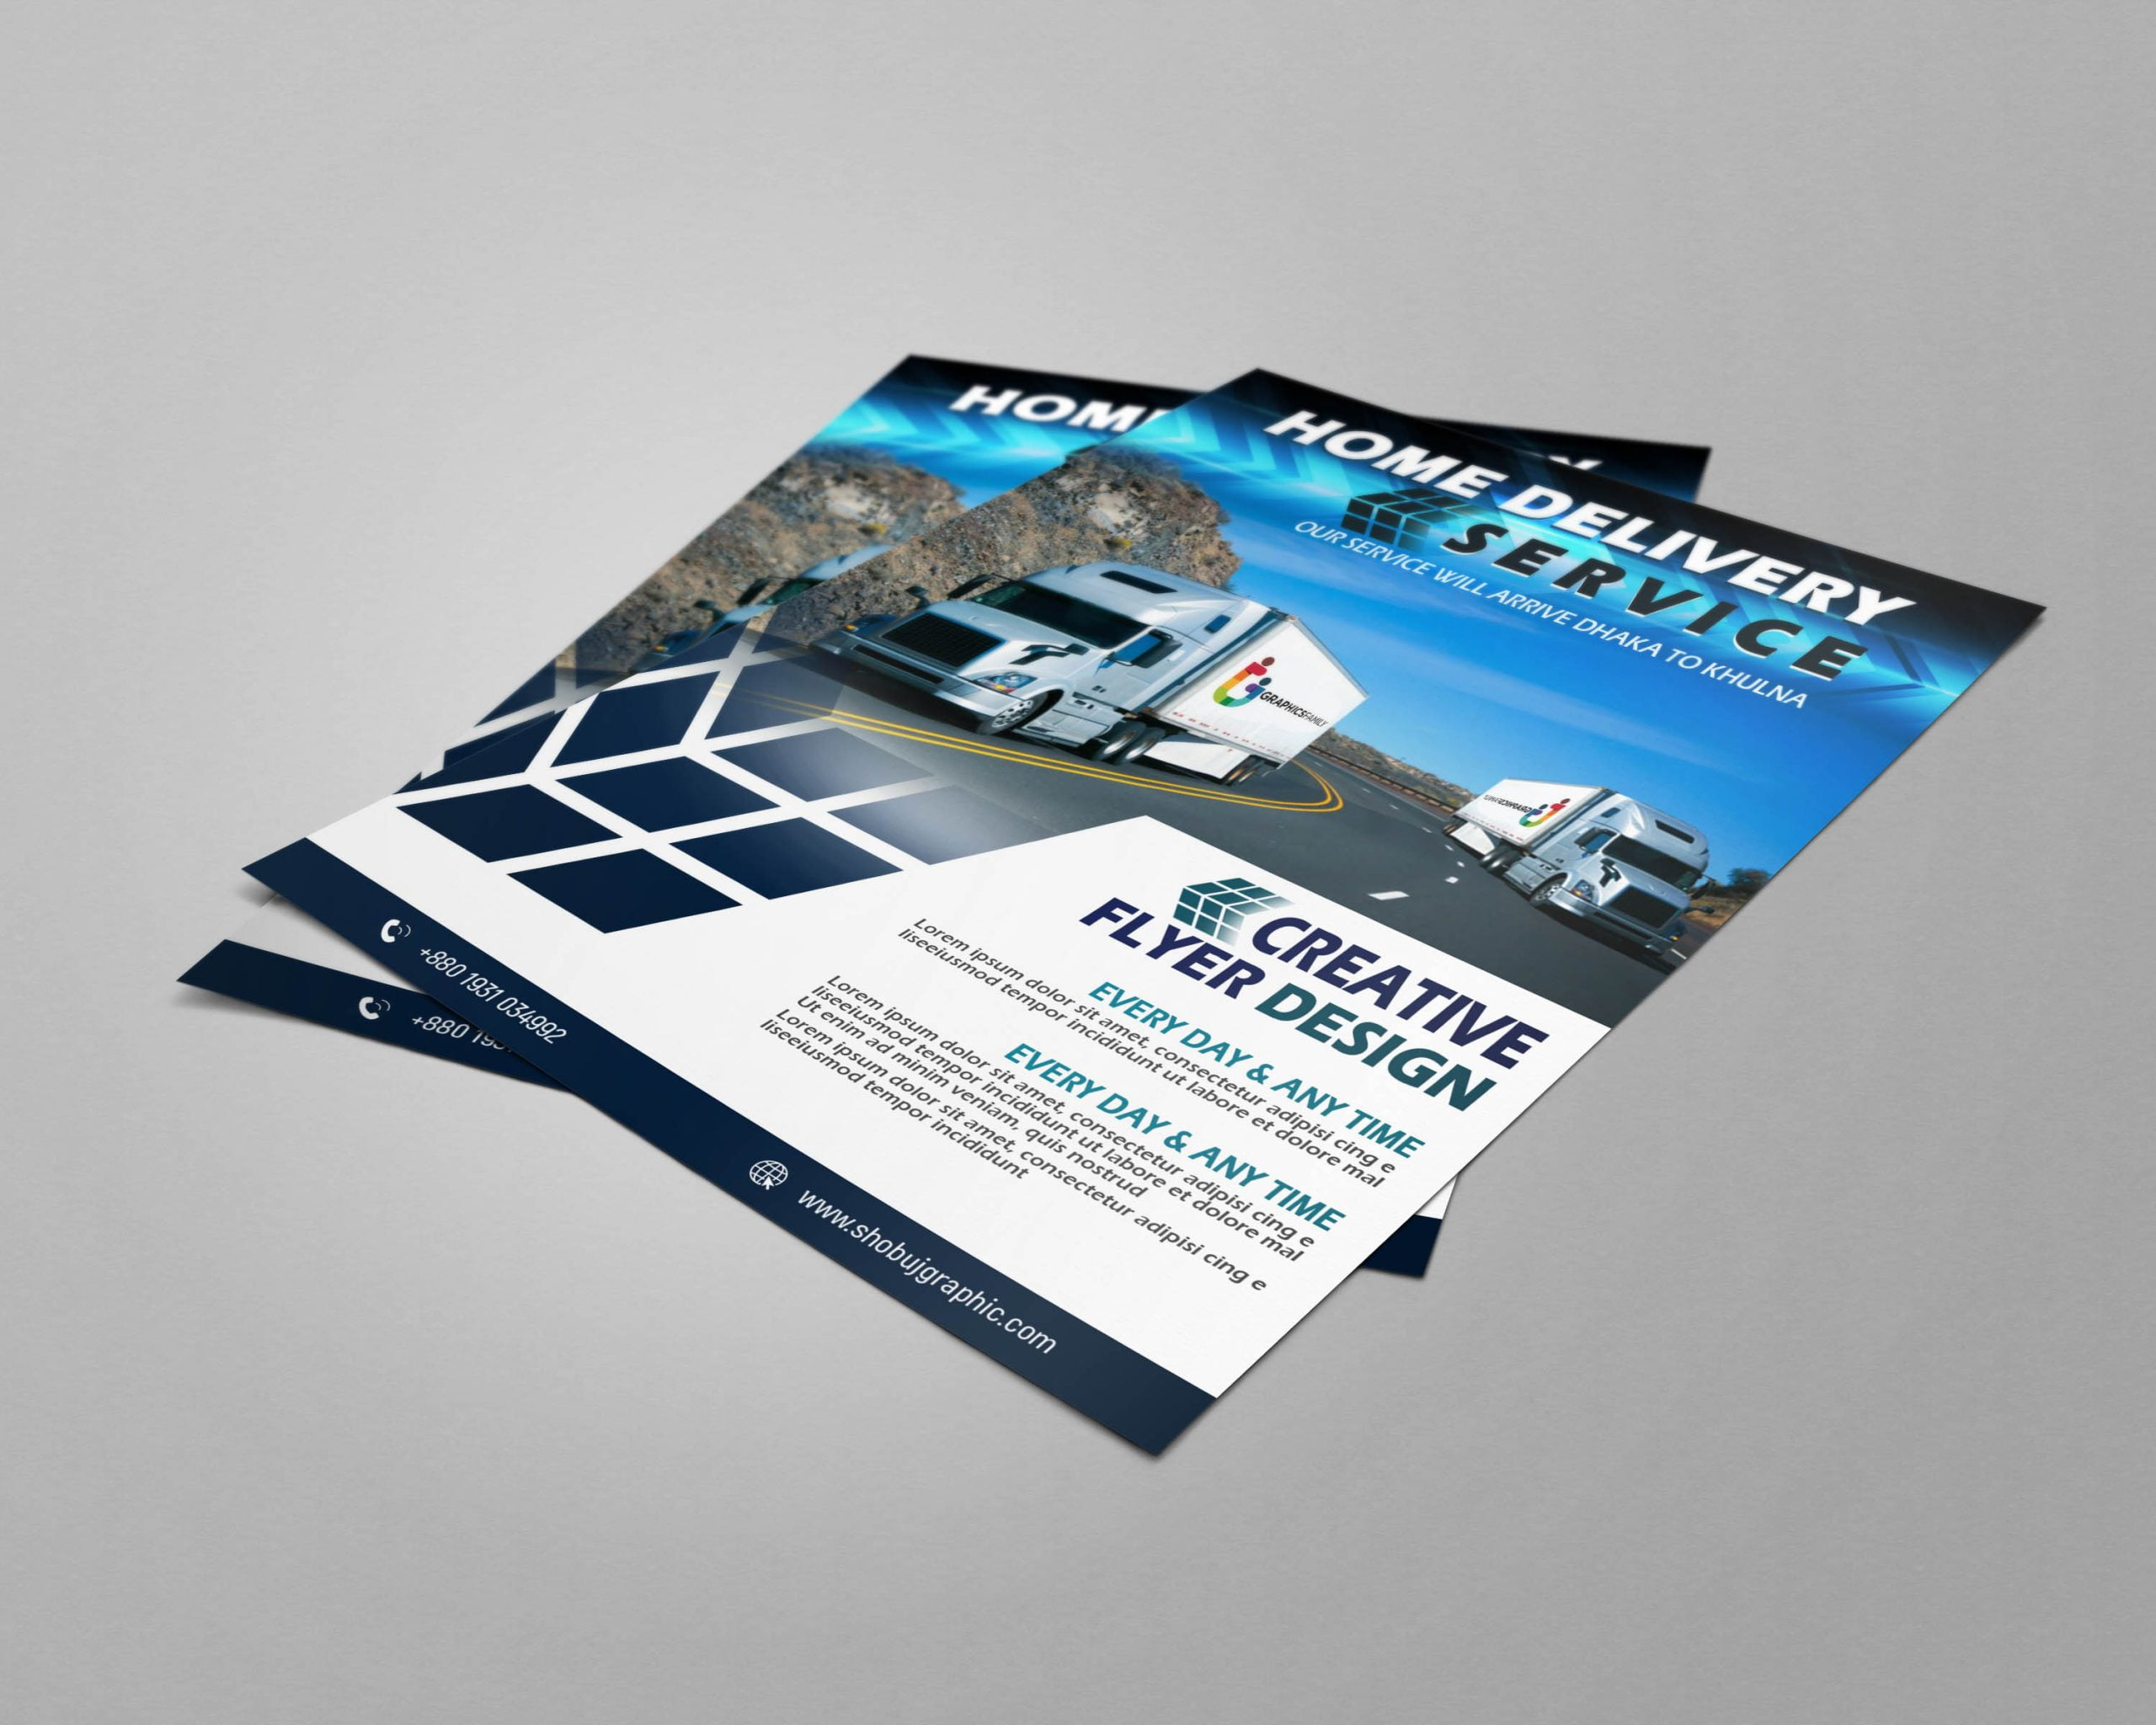 Home delivery service flyer design